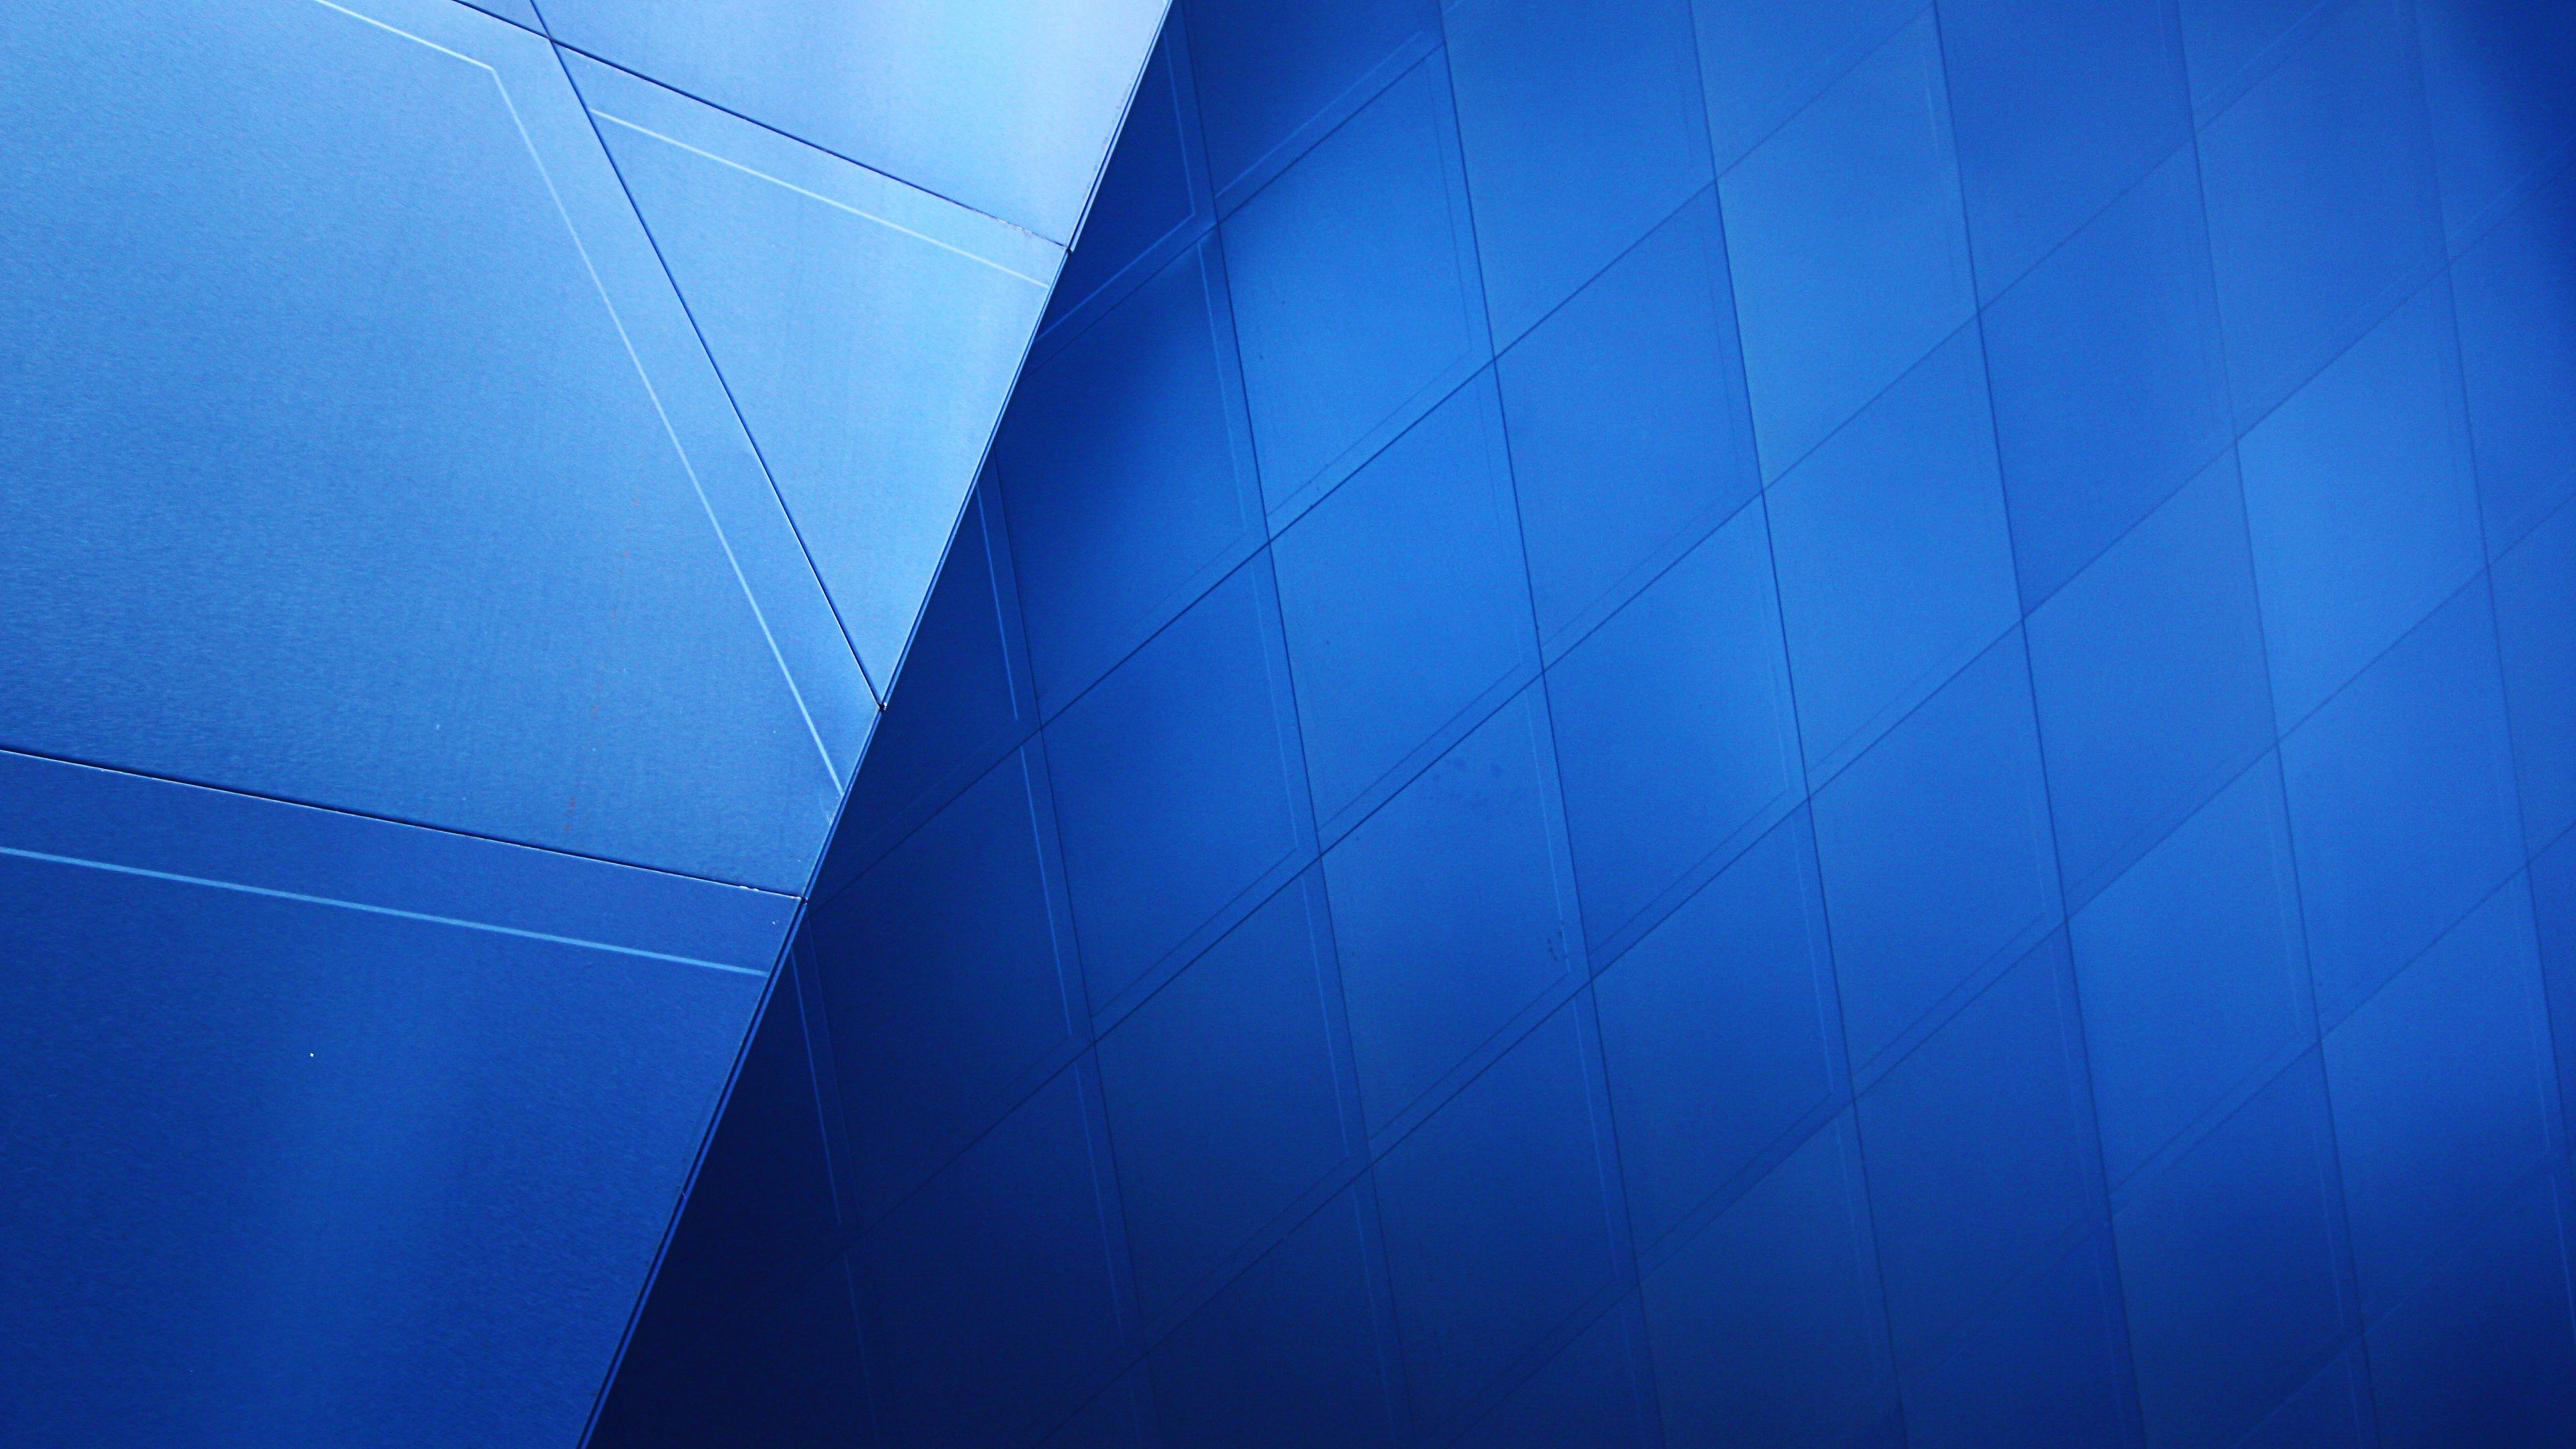 pattern geometry buildings 4k 1555207889 - Pattern Geometry Buildings 4k - photography wallpapers, pattern wallpapers, hd-wallpapers, buildings wallpapers, blue wallpapers, architecture wallpapers, abstract wallpapers, 4k-wallpapers